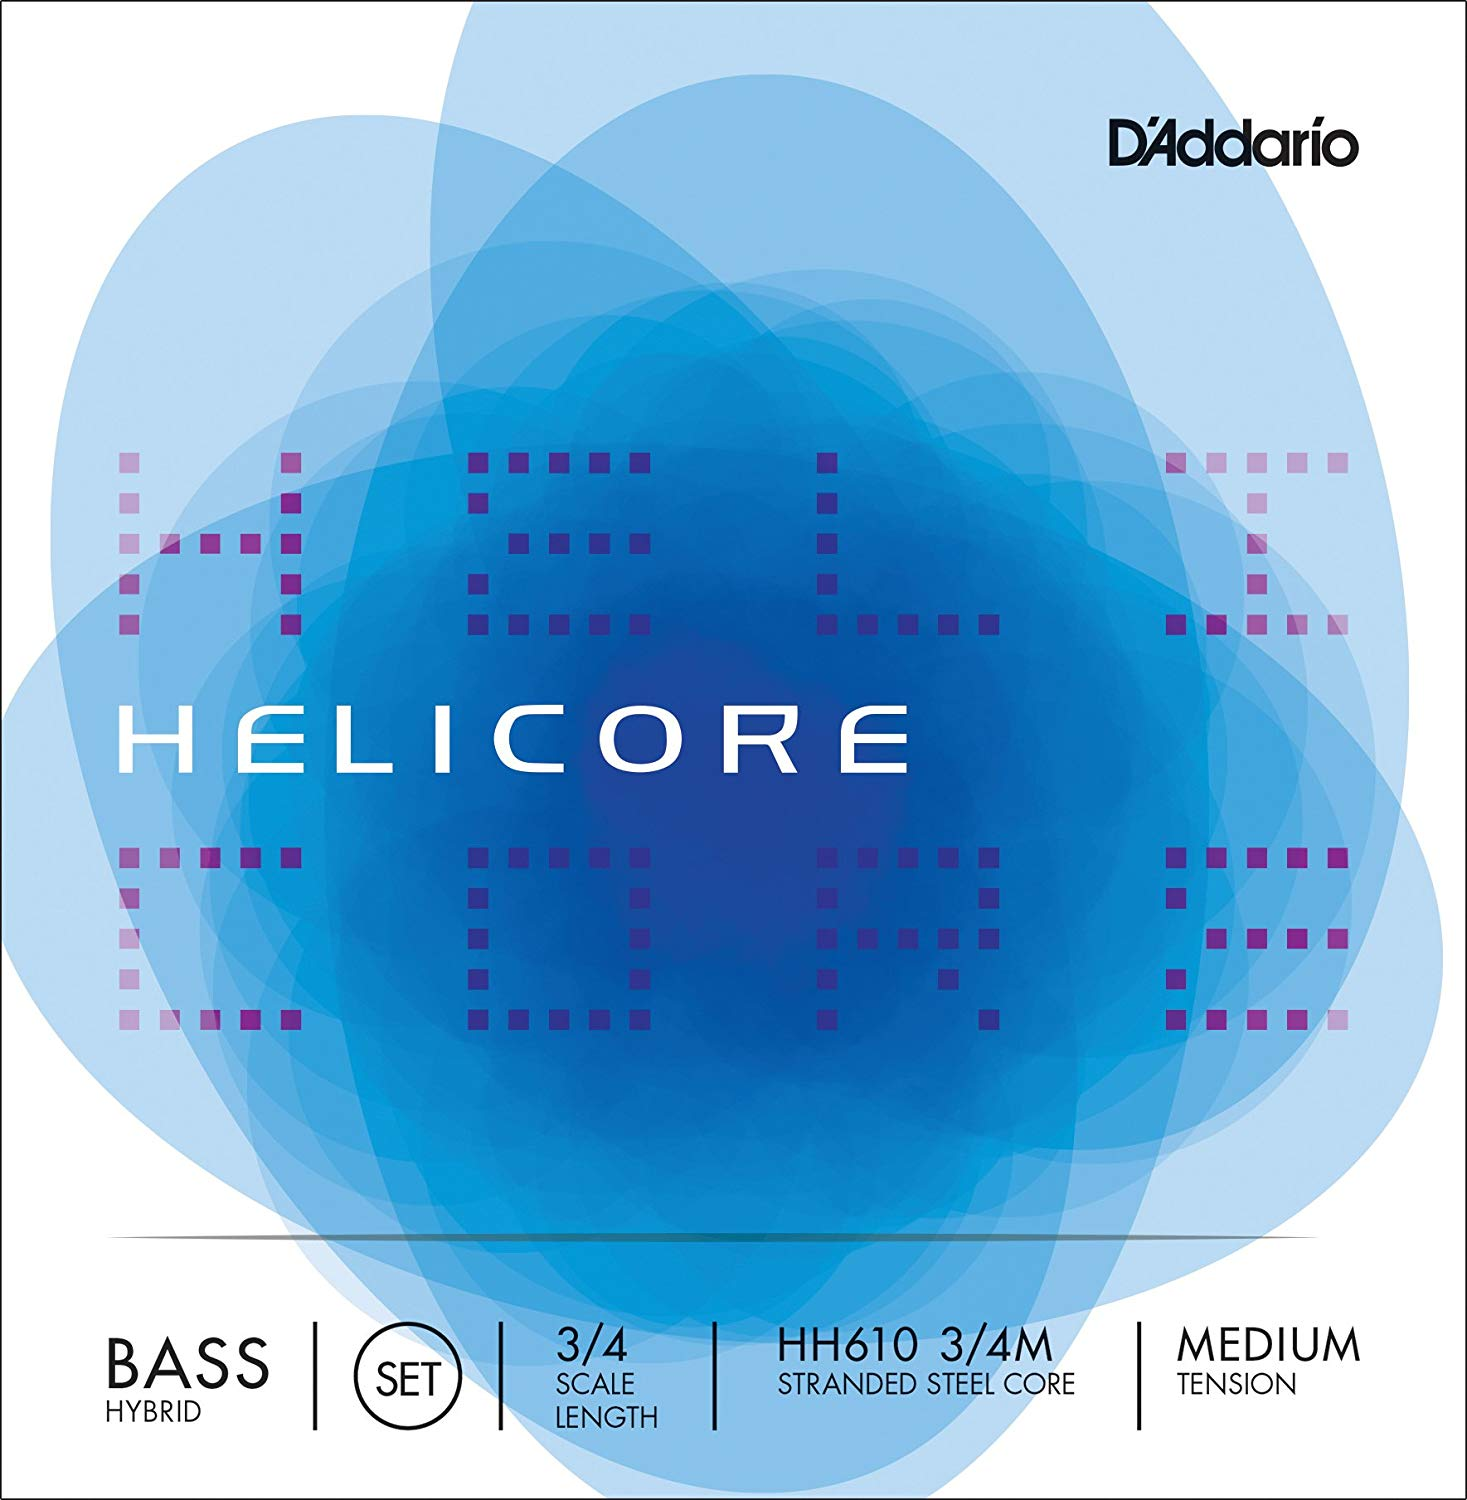 D'Addario Helicore Orchestral Bass String Set in action